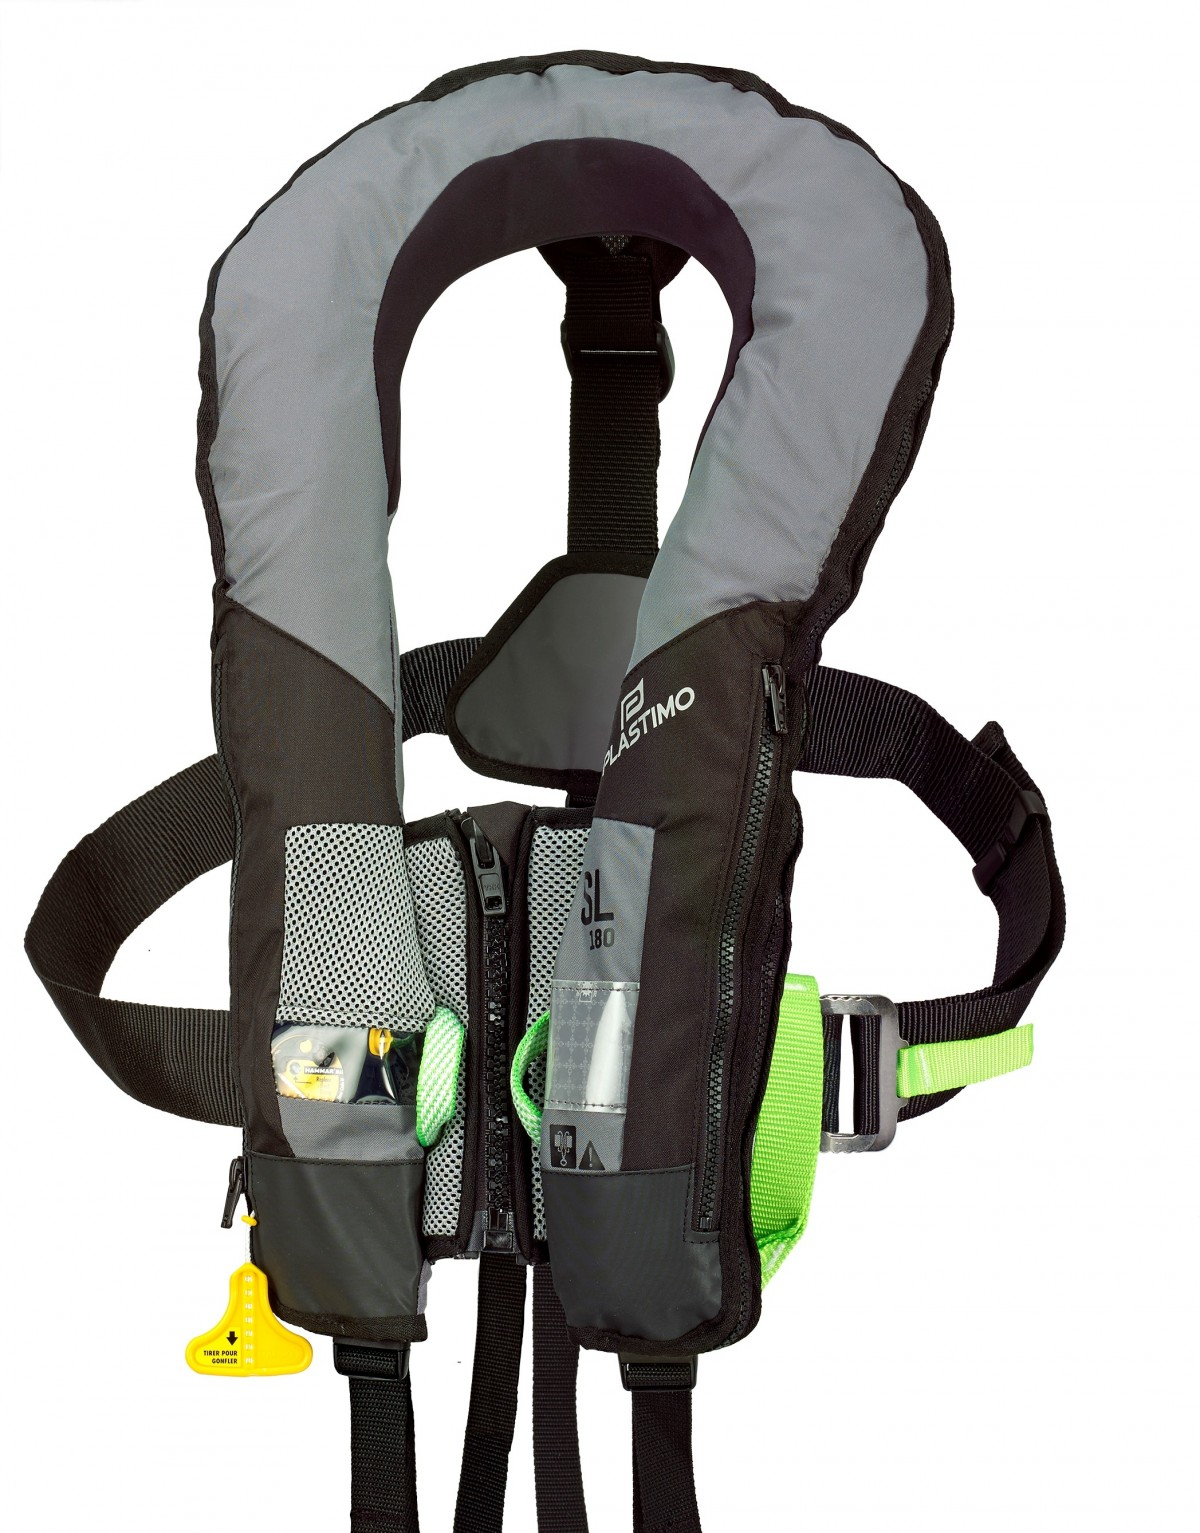 SL180 lifejacket with harness - Inflatable lifejackets - recreational use -  Inflatable lifejackets (recreational) - Safety | Plastimo, happy boating to  youPlastimo